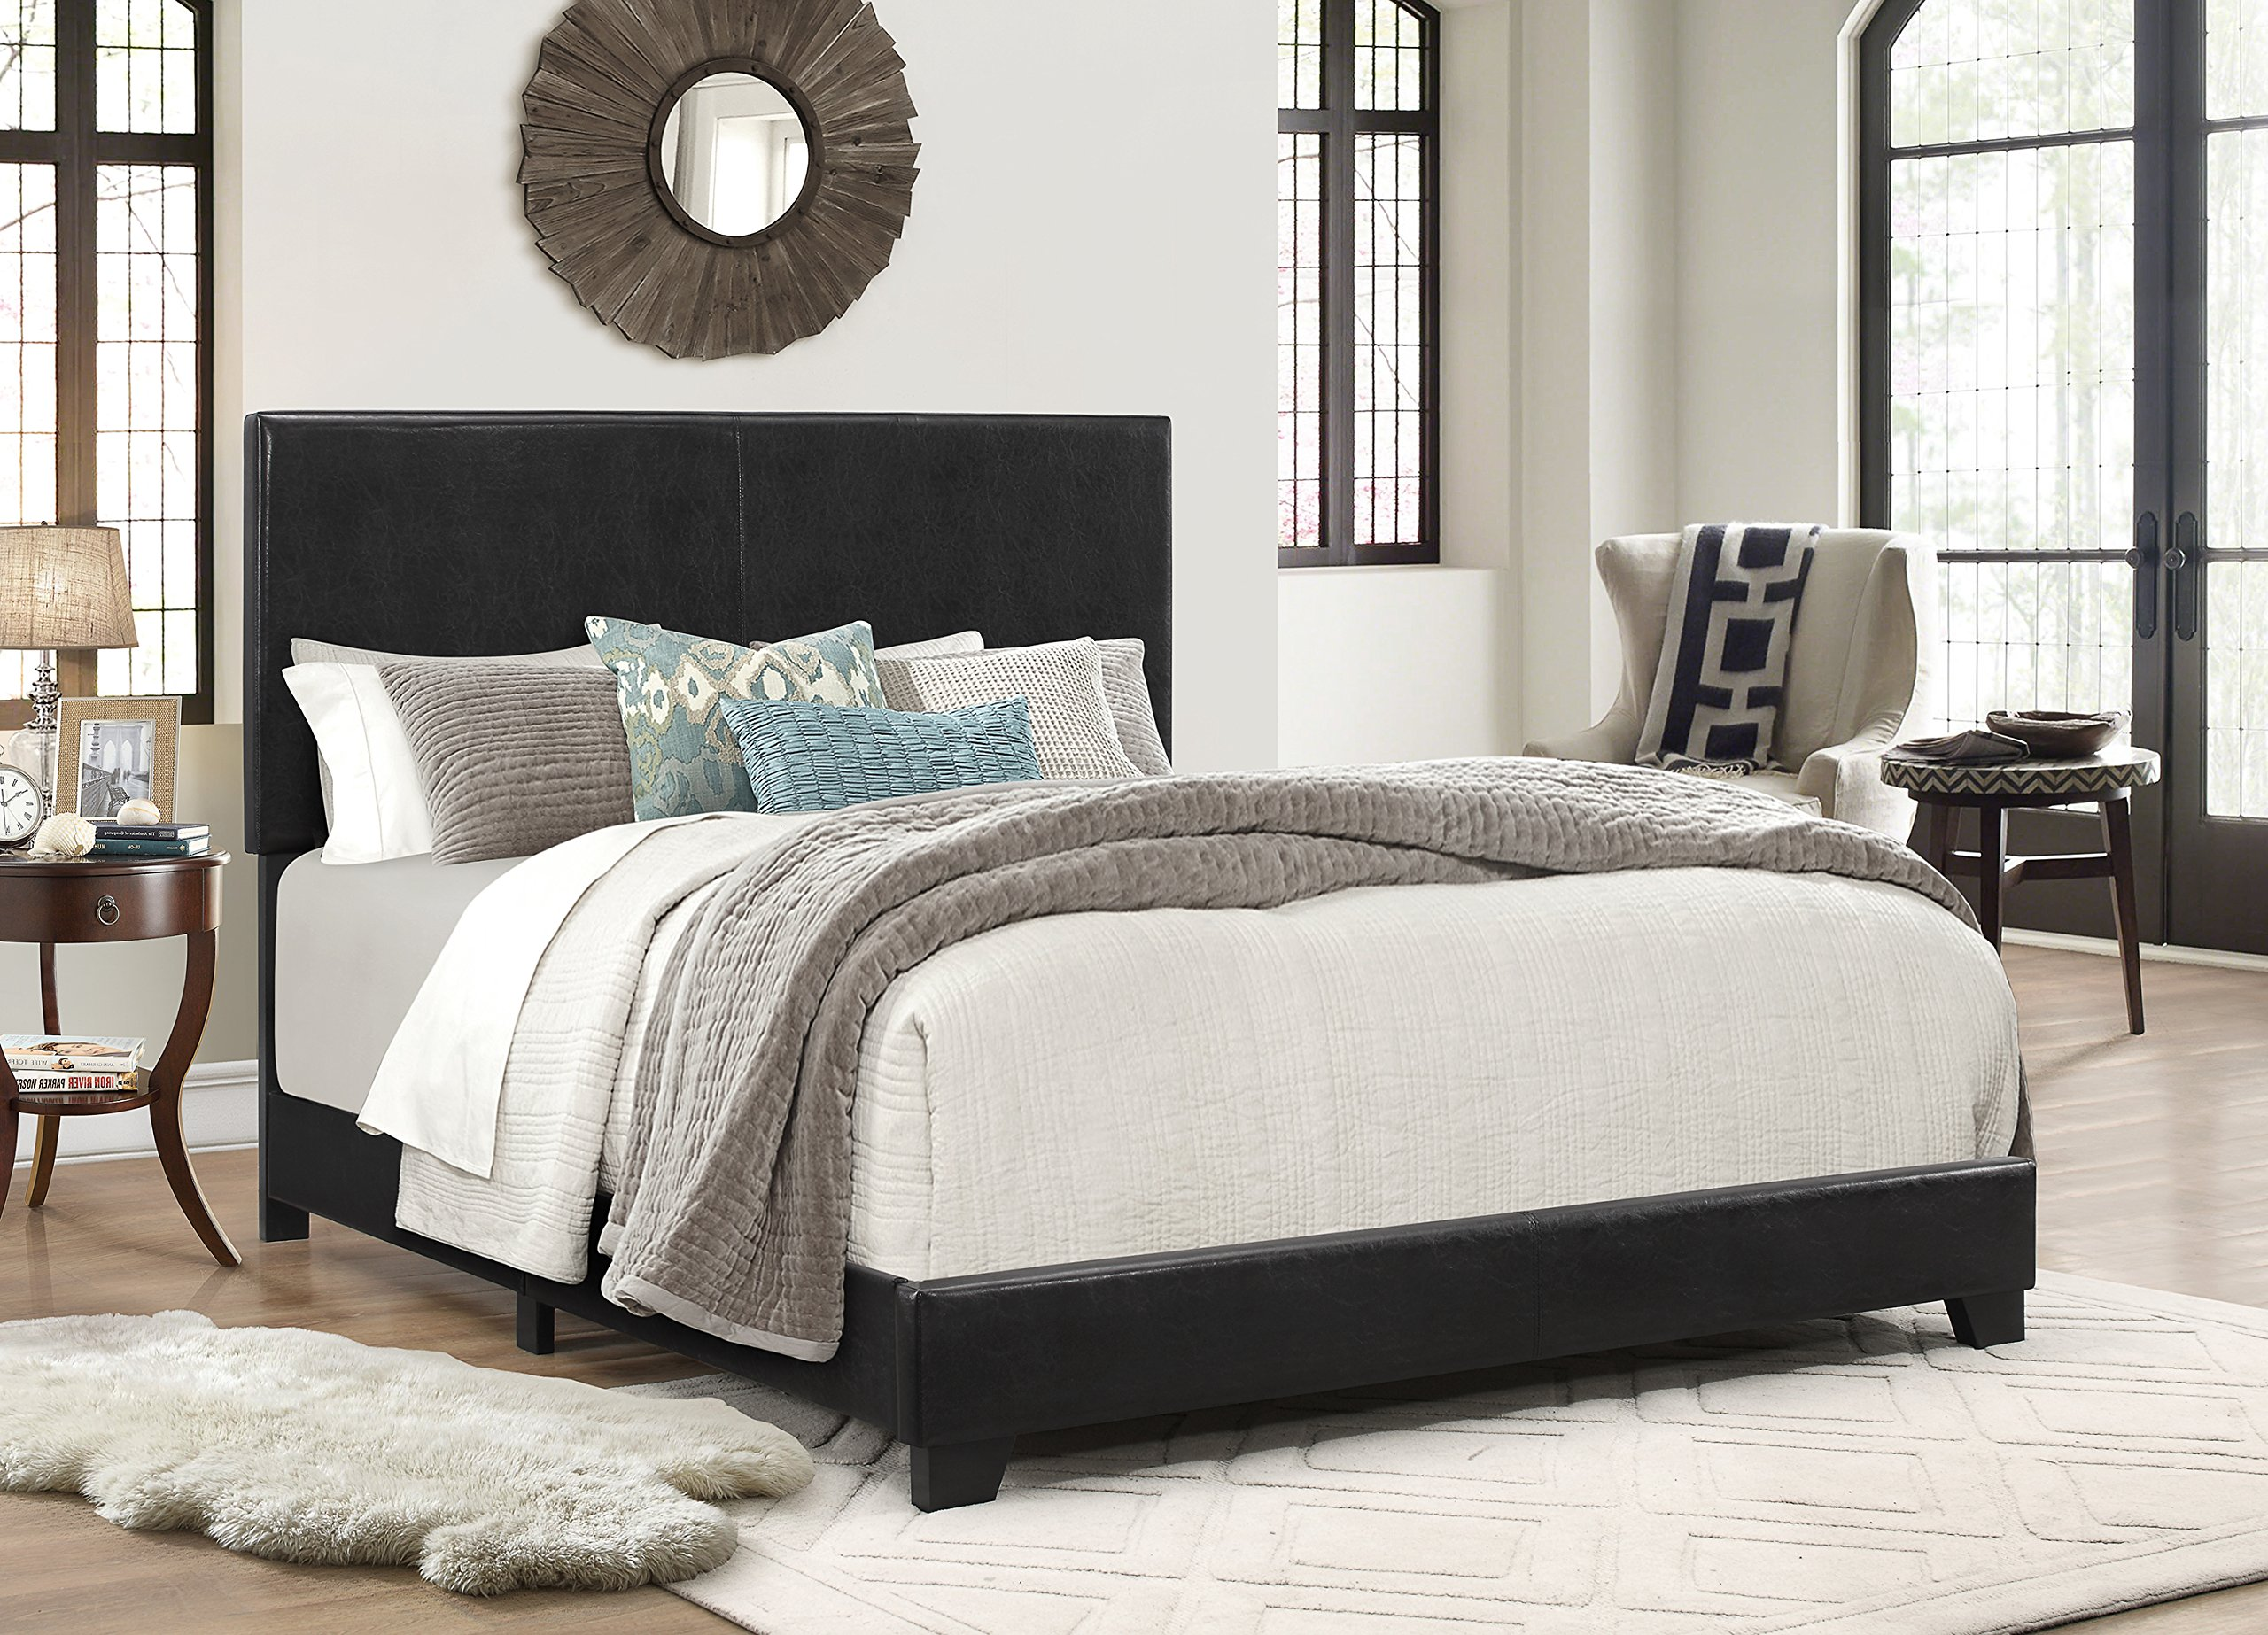 Crown Mark Upholstered Panel Bed in Black, Queen by Crown Mark